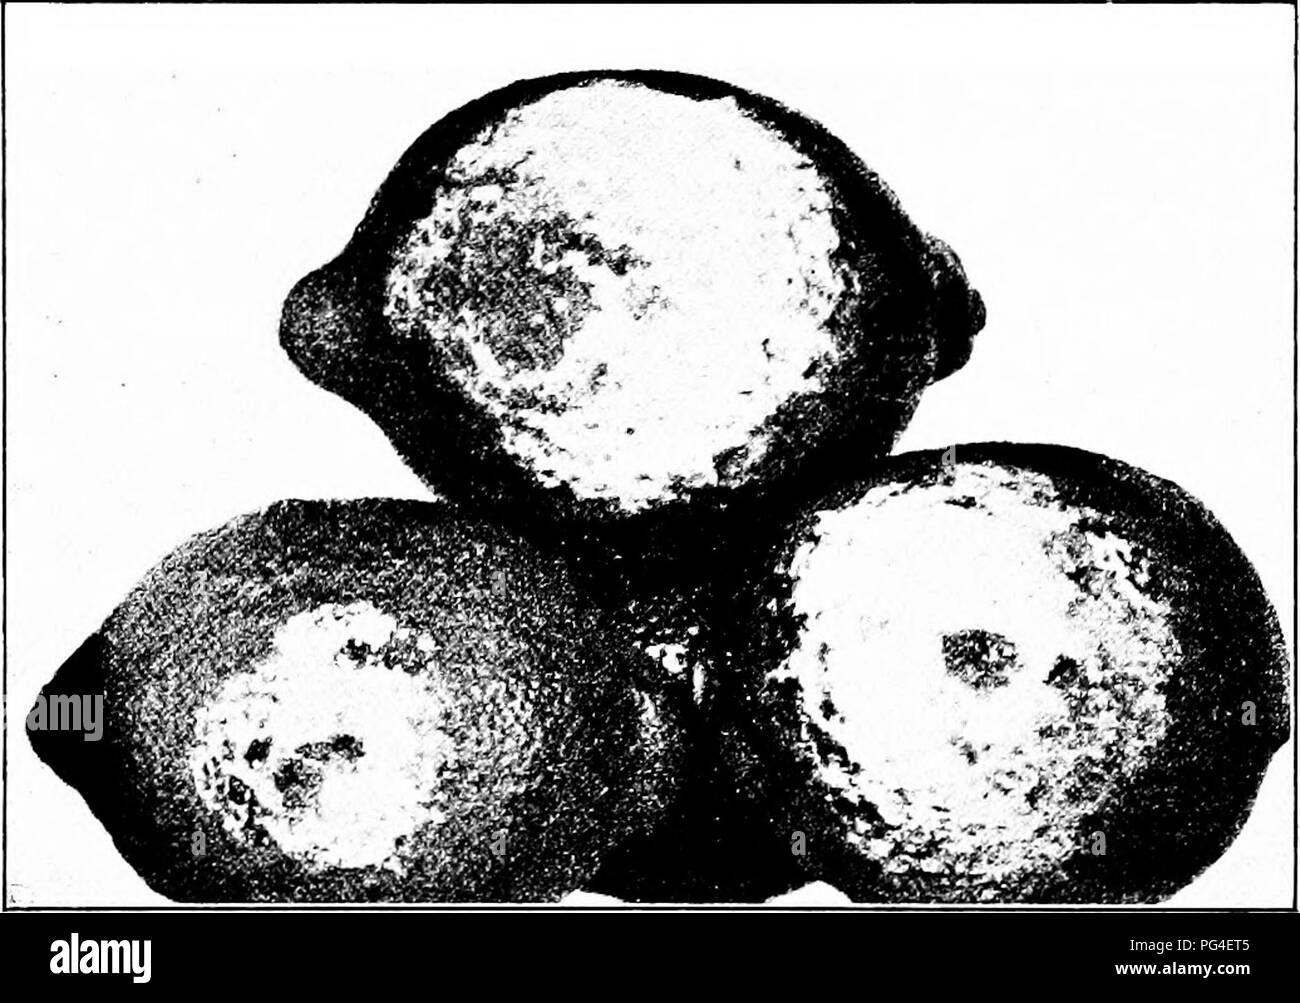 . Diseases of economic plants . Plant diseases. TROPICAL FRUITS 185 The brown rot is found in its purest condition on the fruit in the orchard, especially the fruit on the ground or hanging low on the tree. It is most prevalent in wet weather or on low ground after irrigation. The fungus is. Fig. 79. — Brown rot of lemons, showing white growth of the fungus. After H. E. Smith. visible to the eye in the packing-house, as of a mass of white filaments. It is spread by contact alone. Orchard infection can be controlled by the use of a heavy mulch under the trees, either straw or a heavy cover crop - Stock Image